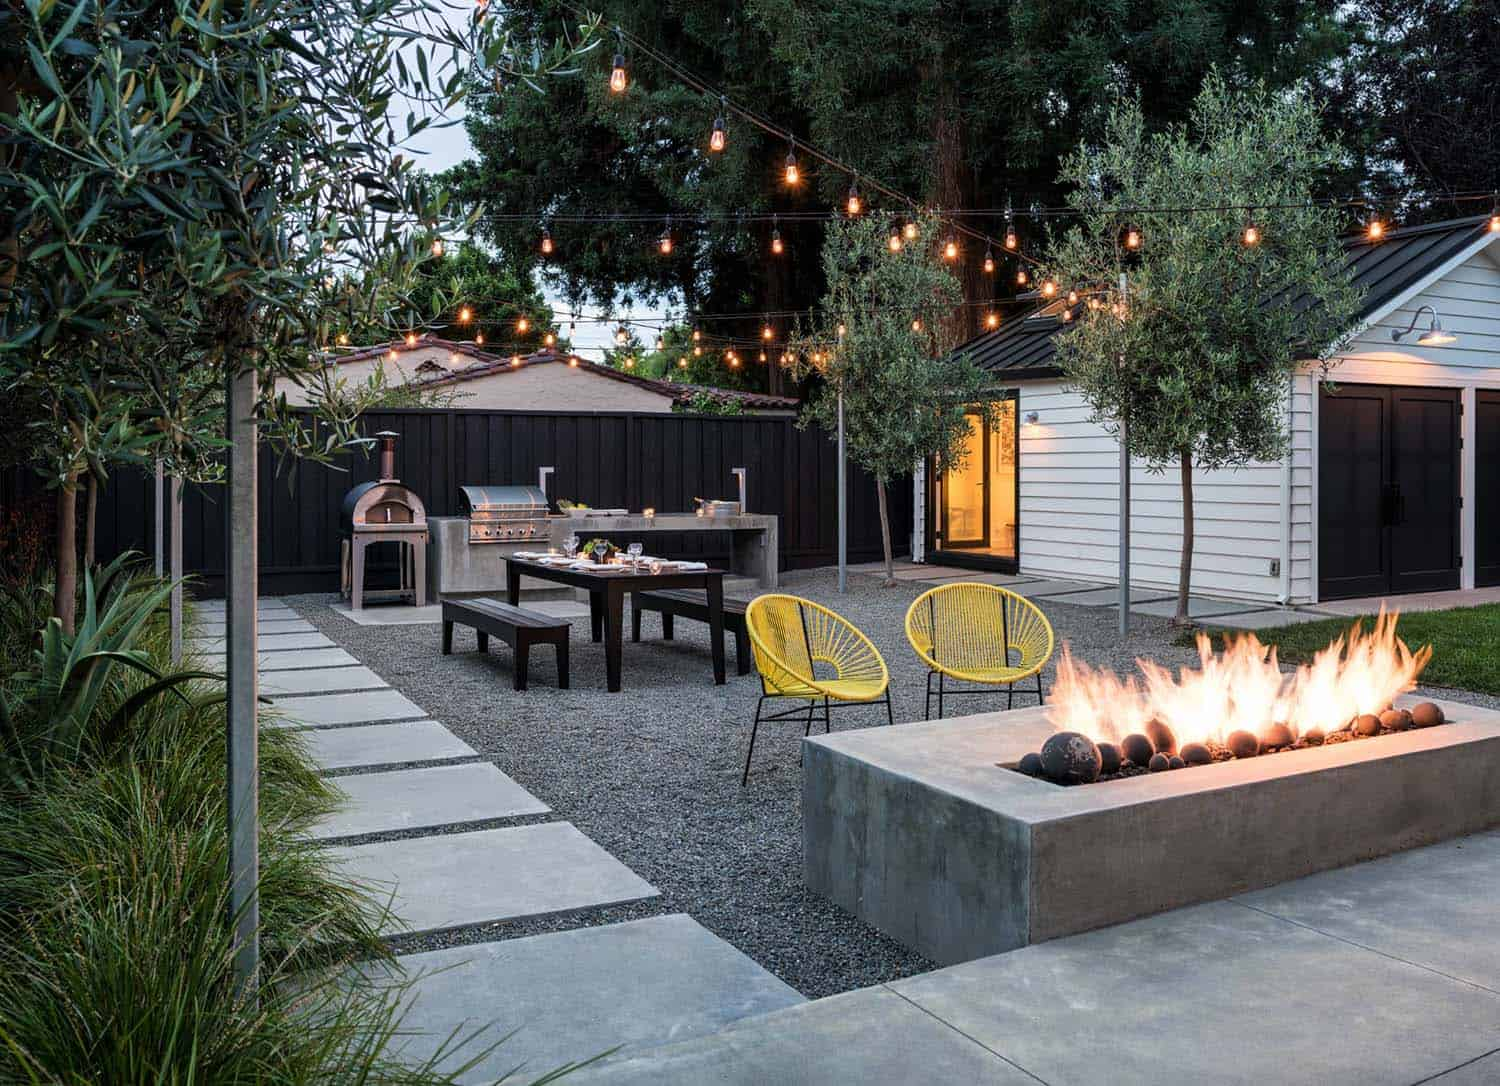 33 Fabulous Ideas For Creating Beautiful Outdoor Living Spaces on Living Spaces Outdoor Dining id=78445